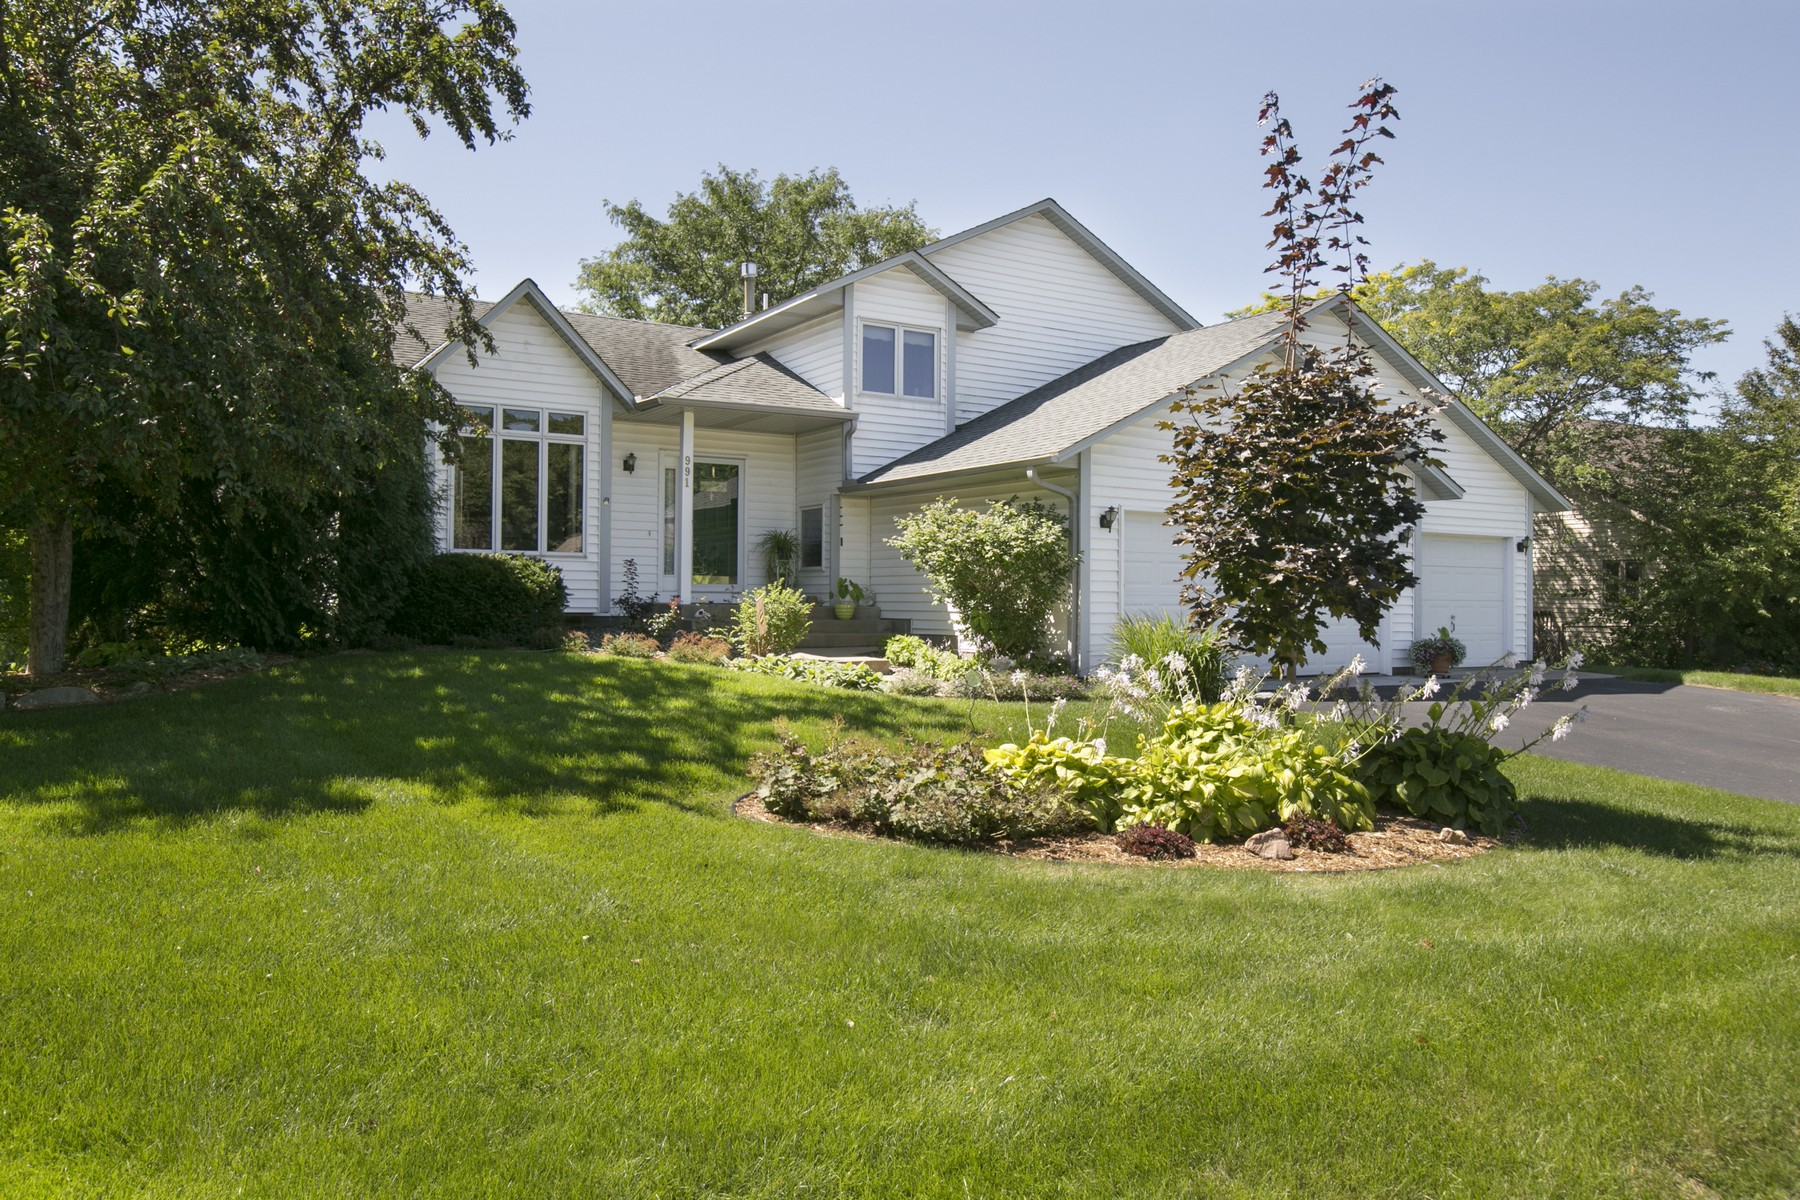 Single Family Home for Sale at 991 Bluff Pass N Chaska, Minnesota 55318 United States